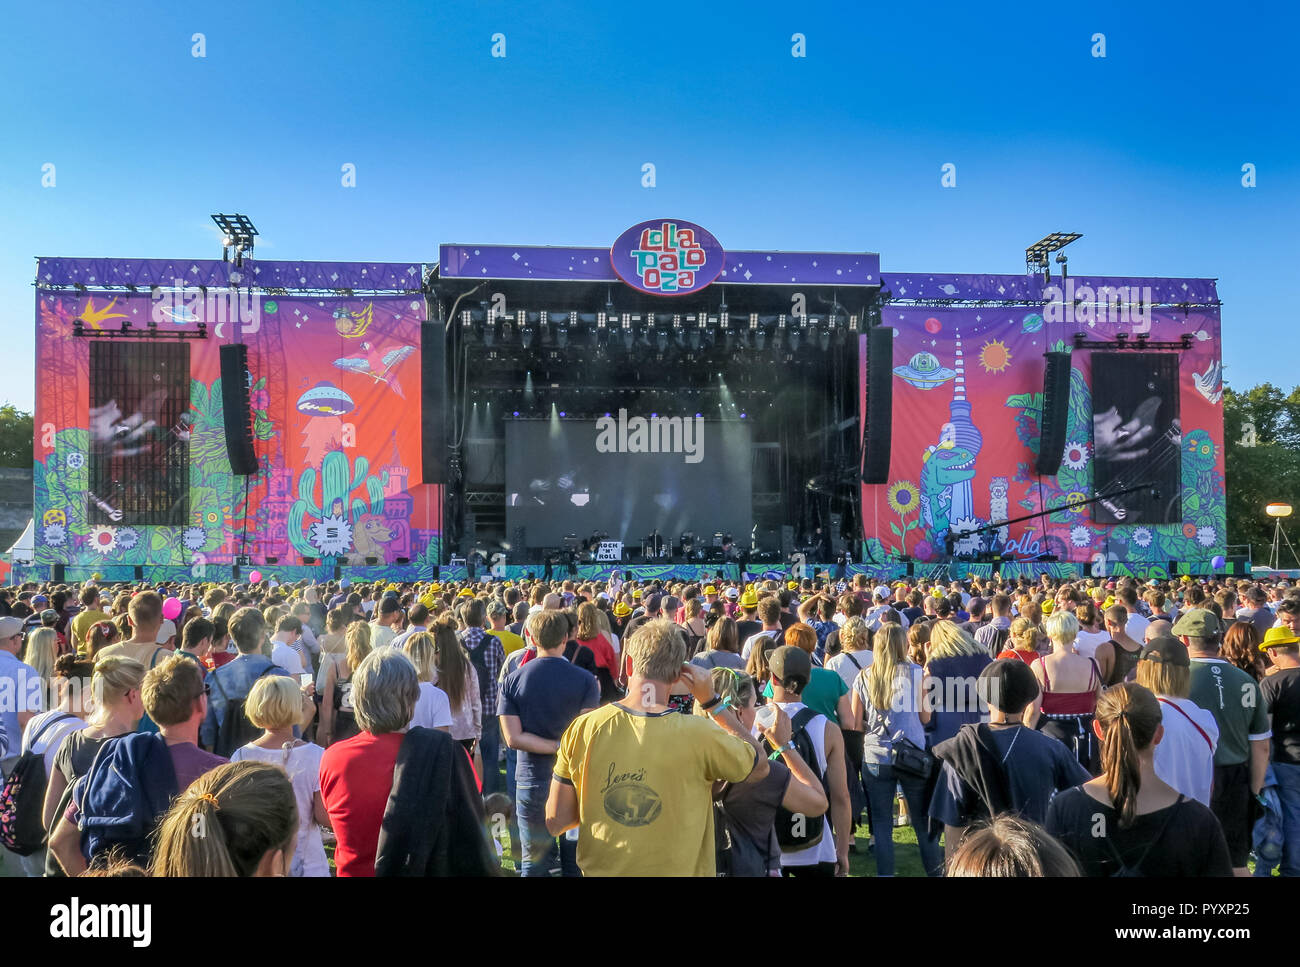 Concert Liam Gallagher, Lollapalooza festival, Olympic stadium, Westend, Berlin, Germany, Konzert Liam Gallagher, Lollapalooza-Festival, Olympiastadio - Stock Image